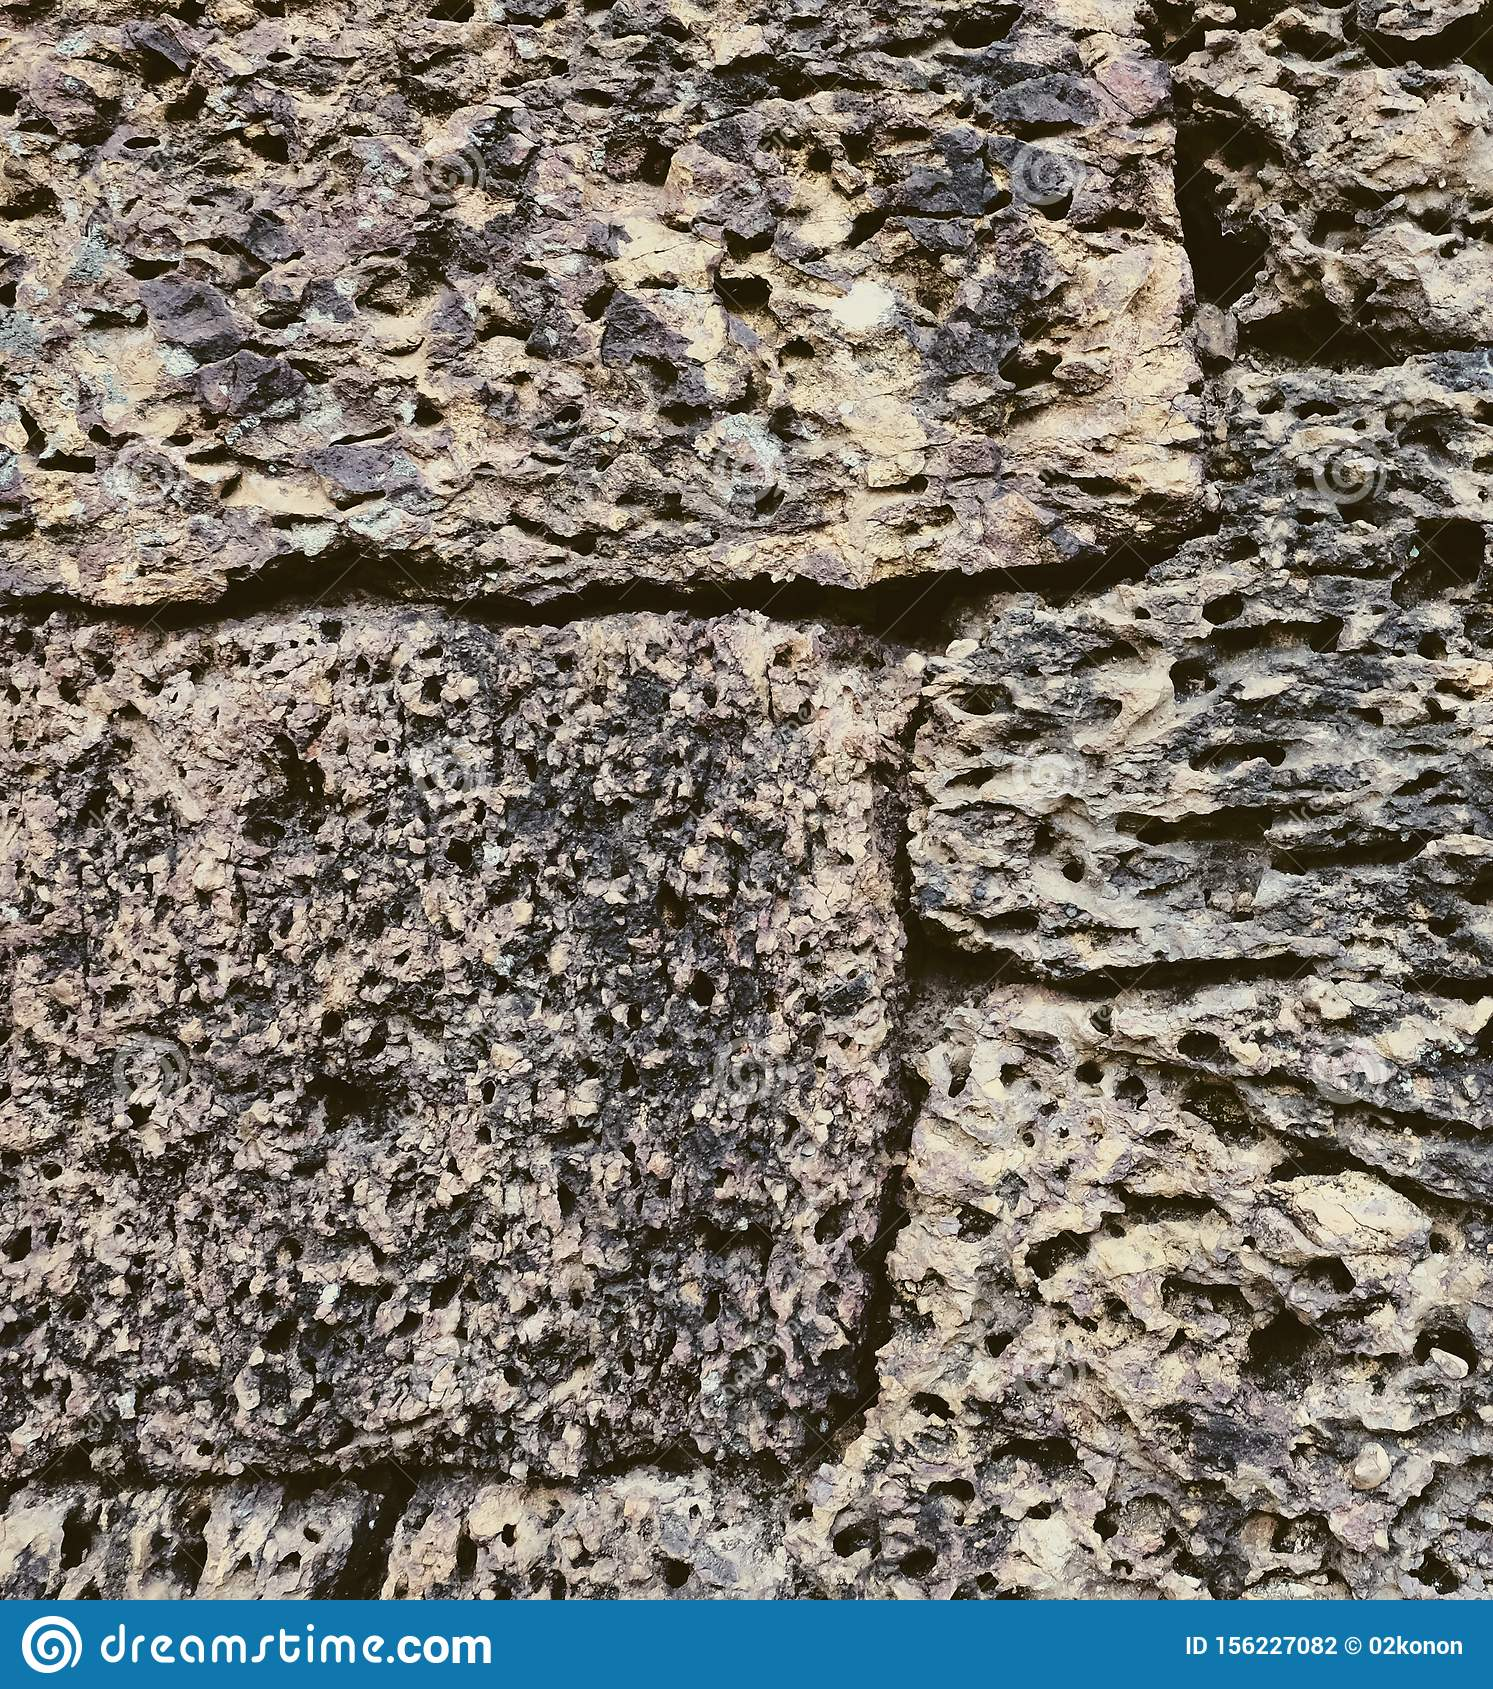 Antique stonework. Stone wall as background. Solid surface